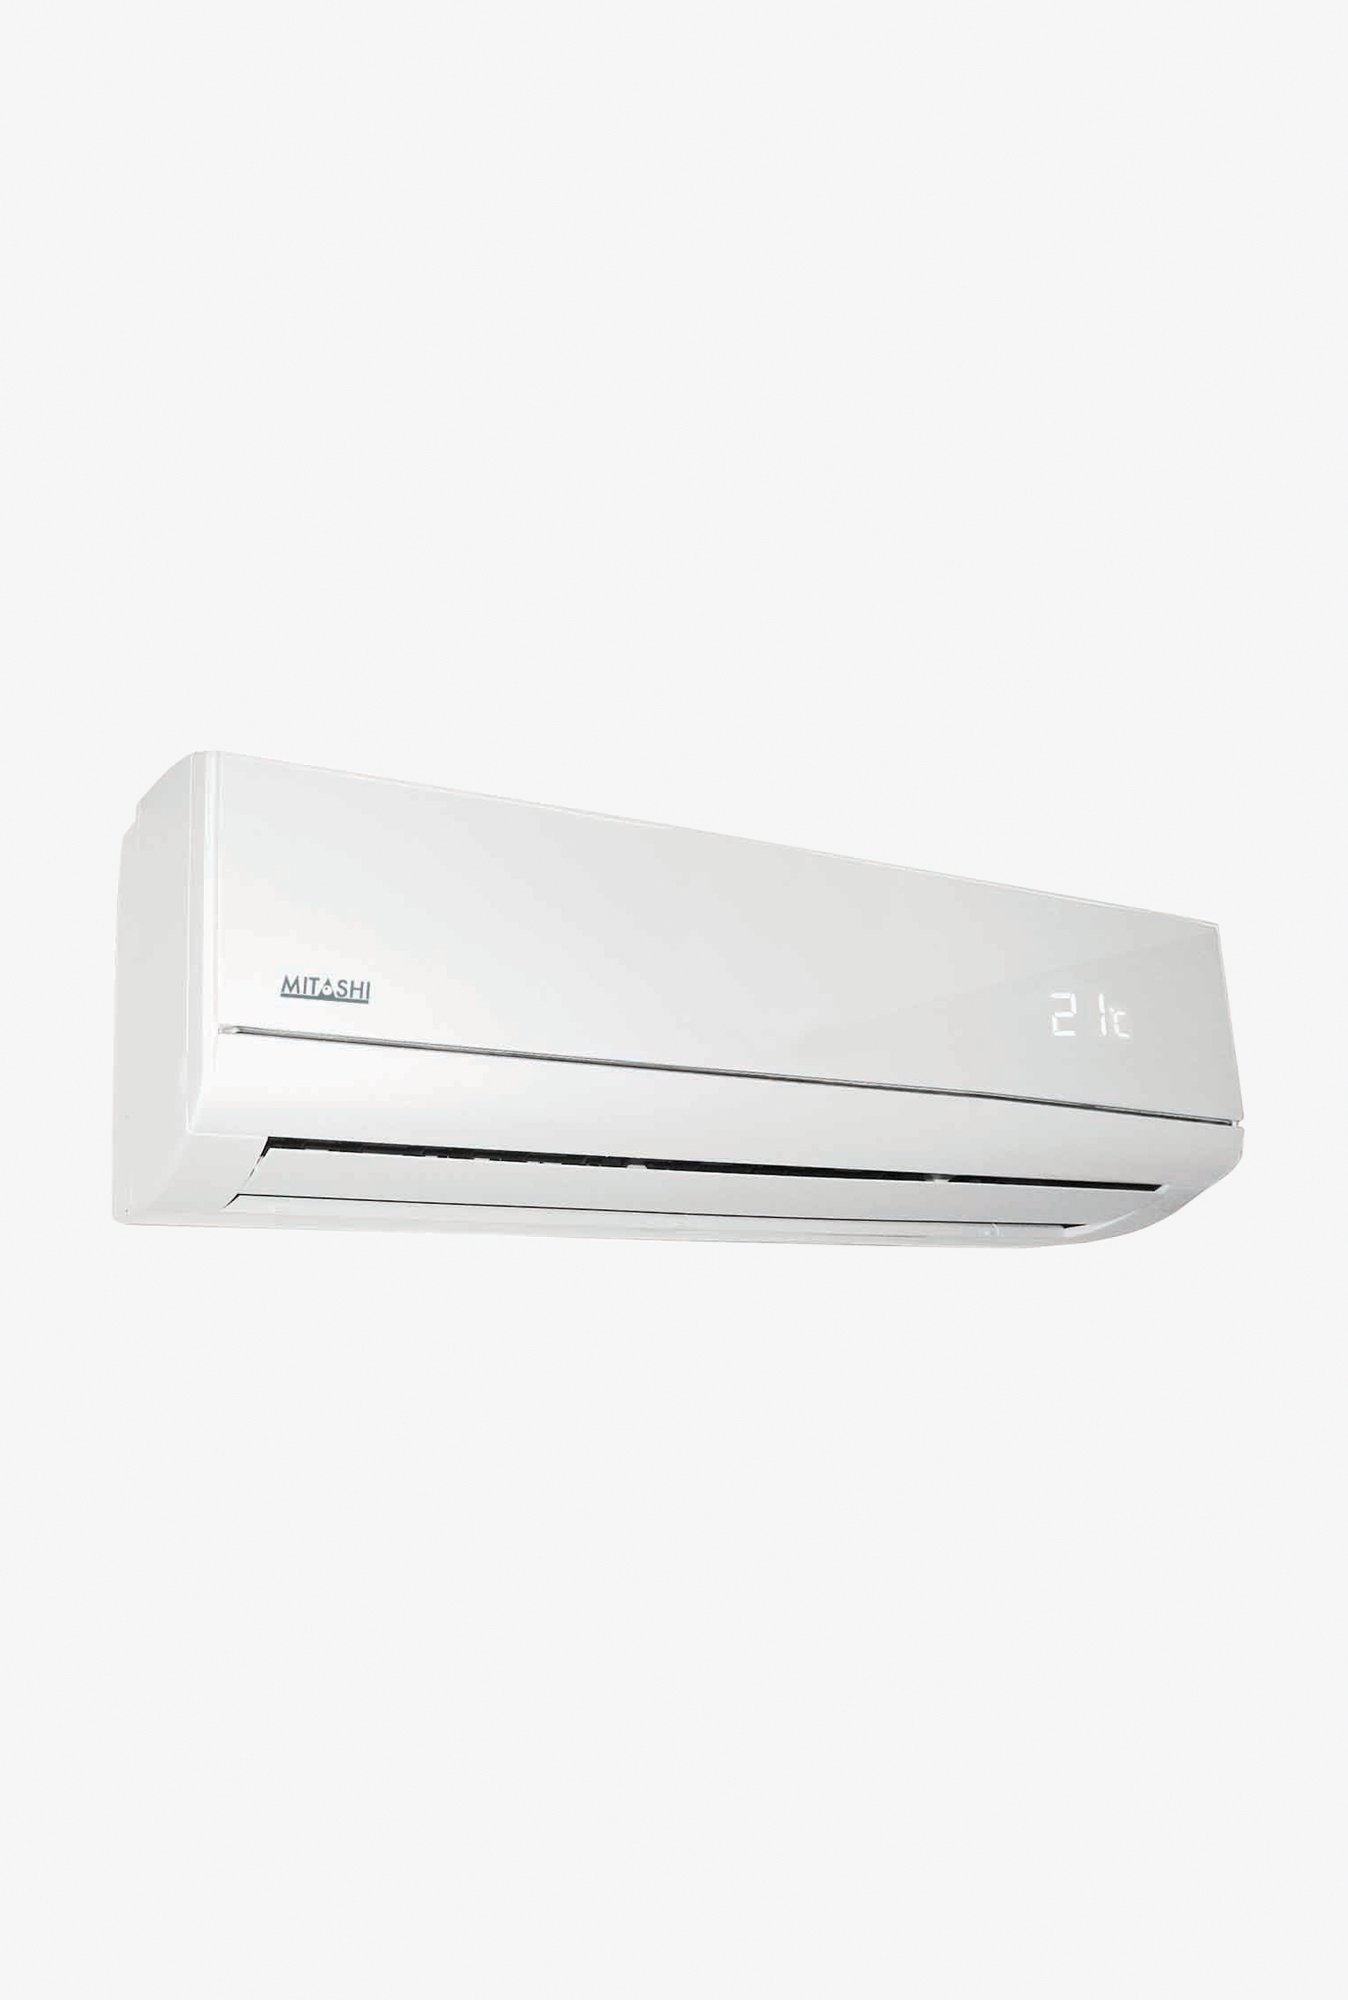 Mitashi MiSAC105v05 1 Ton 5 Star (2017) Split AC Copper (White)